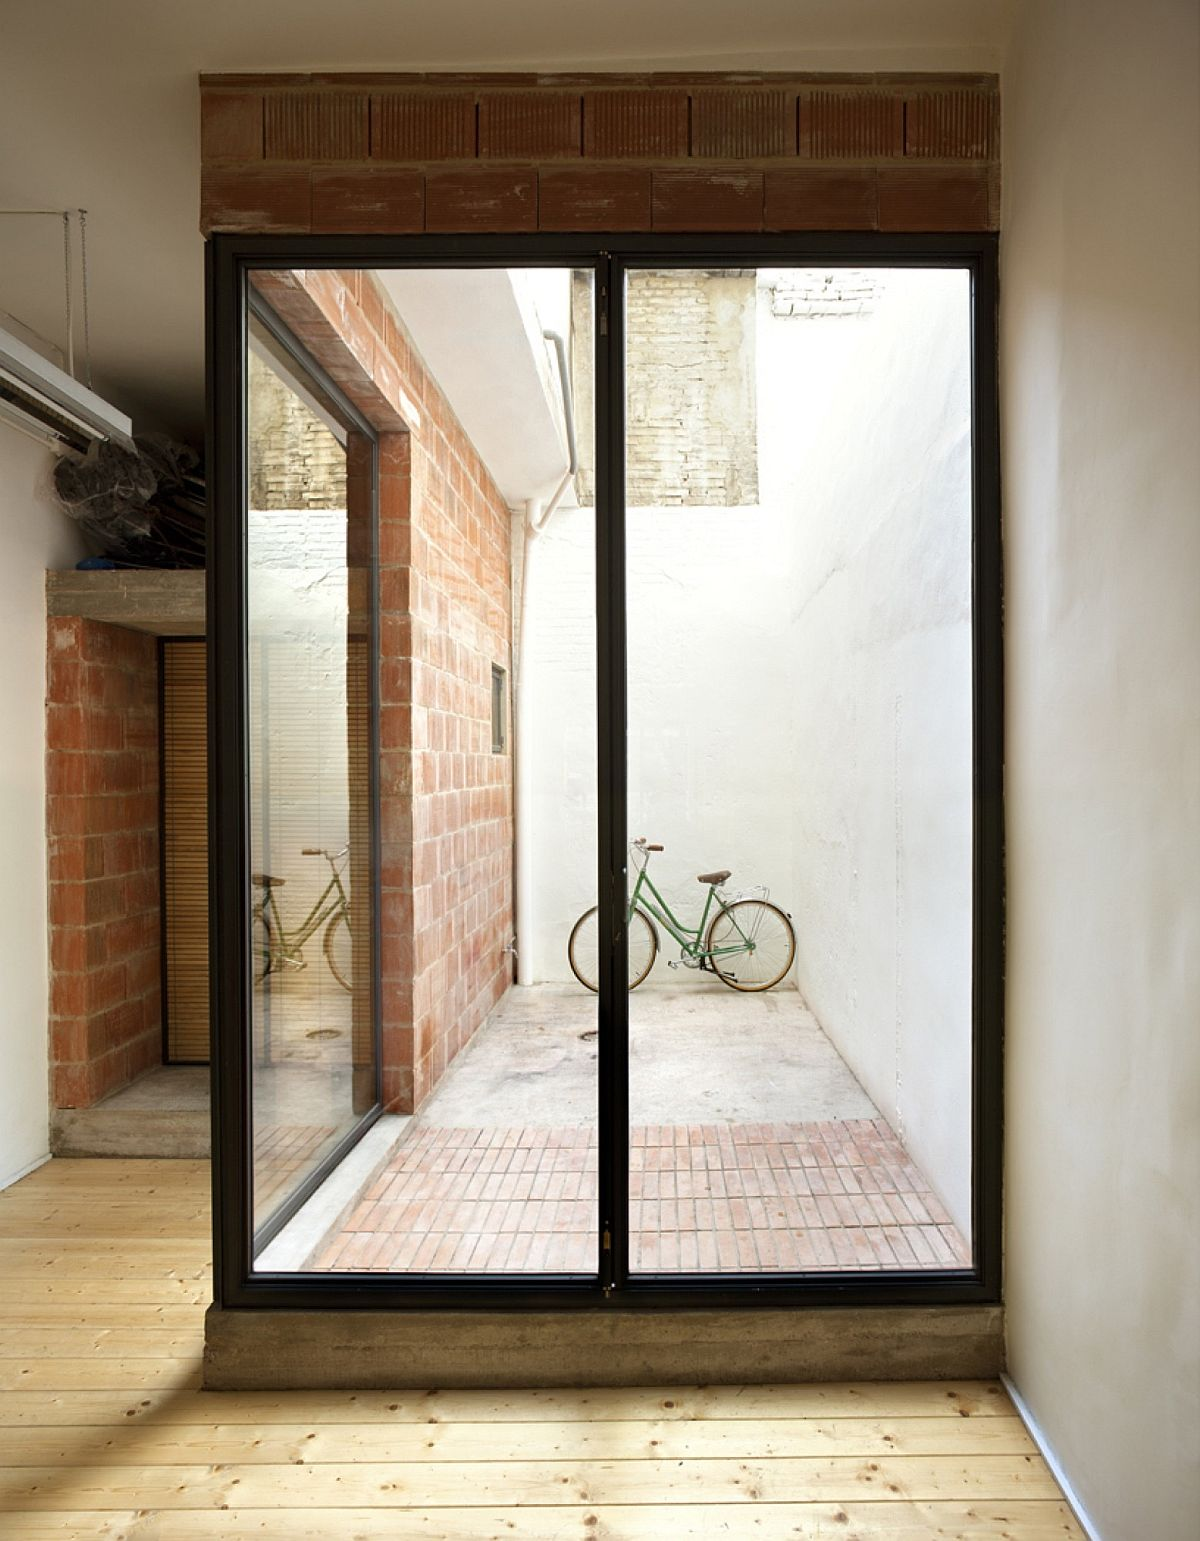 Brick-wood-and-glass-come-together-inside-the-remodeled-cycle-shop